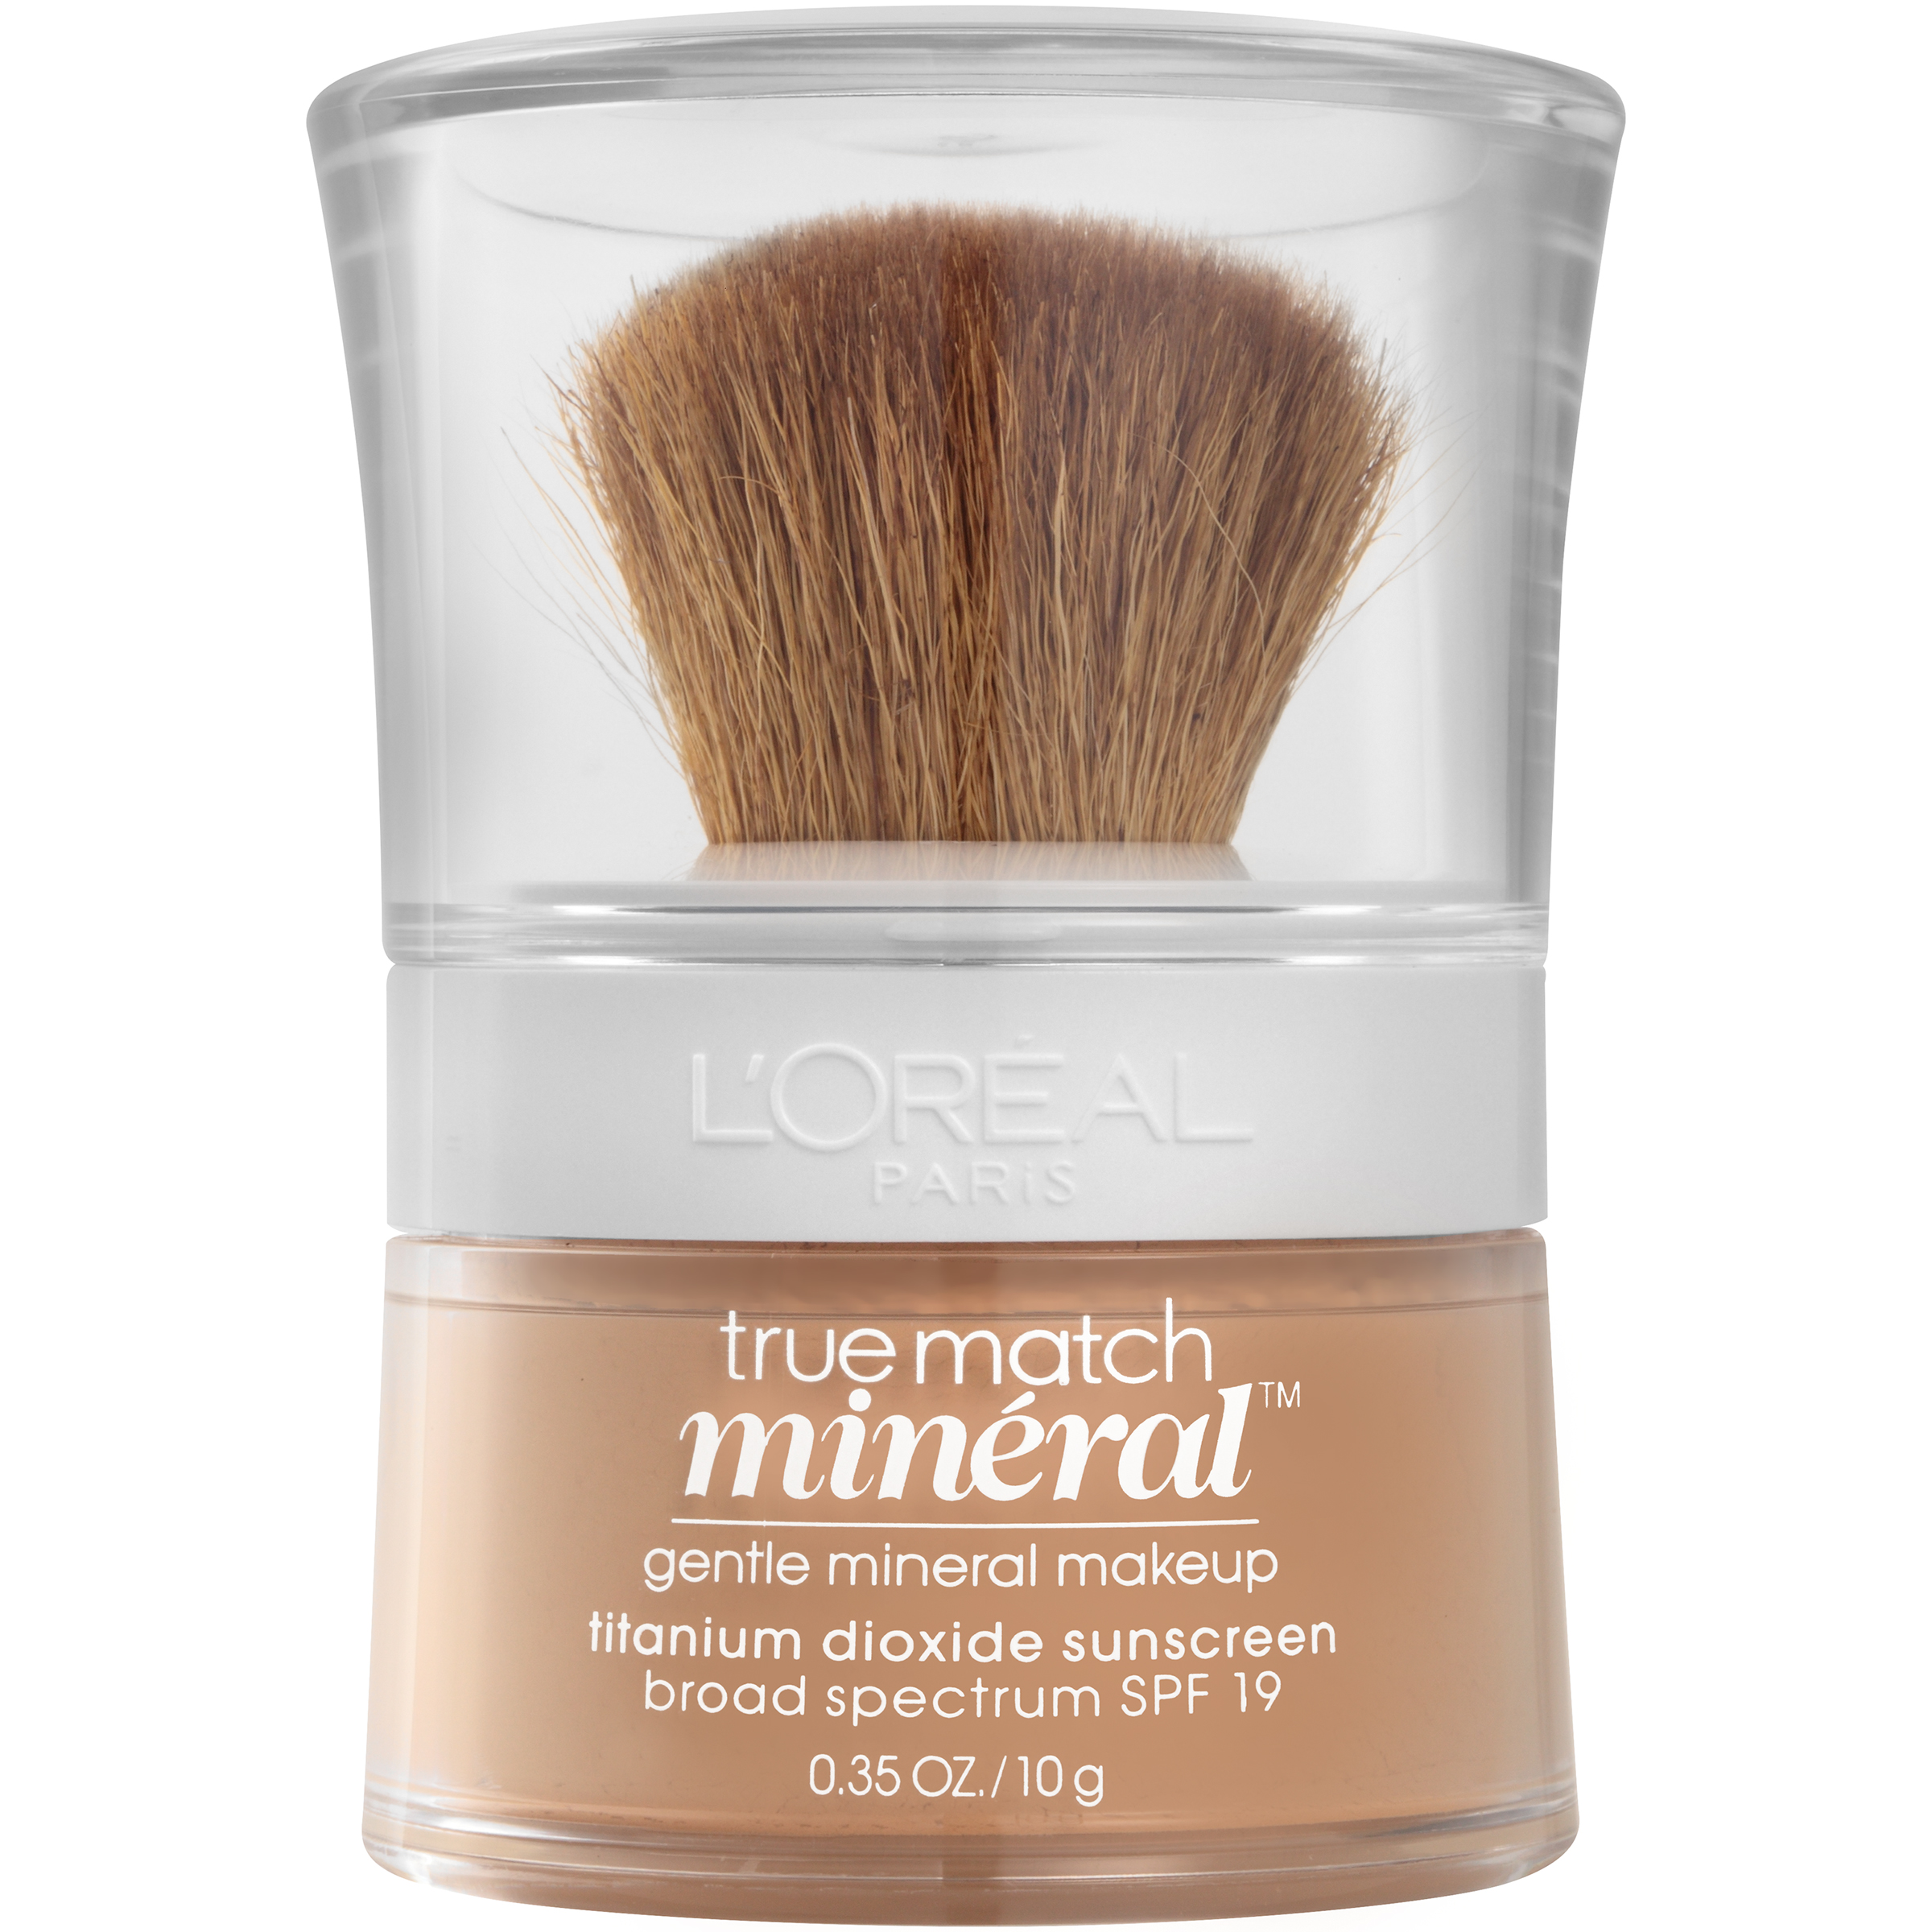 L'Oréal Paris True Match Naturale Mineral Foundation, $15.95